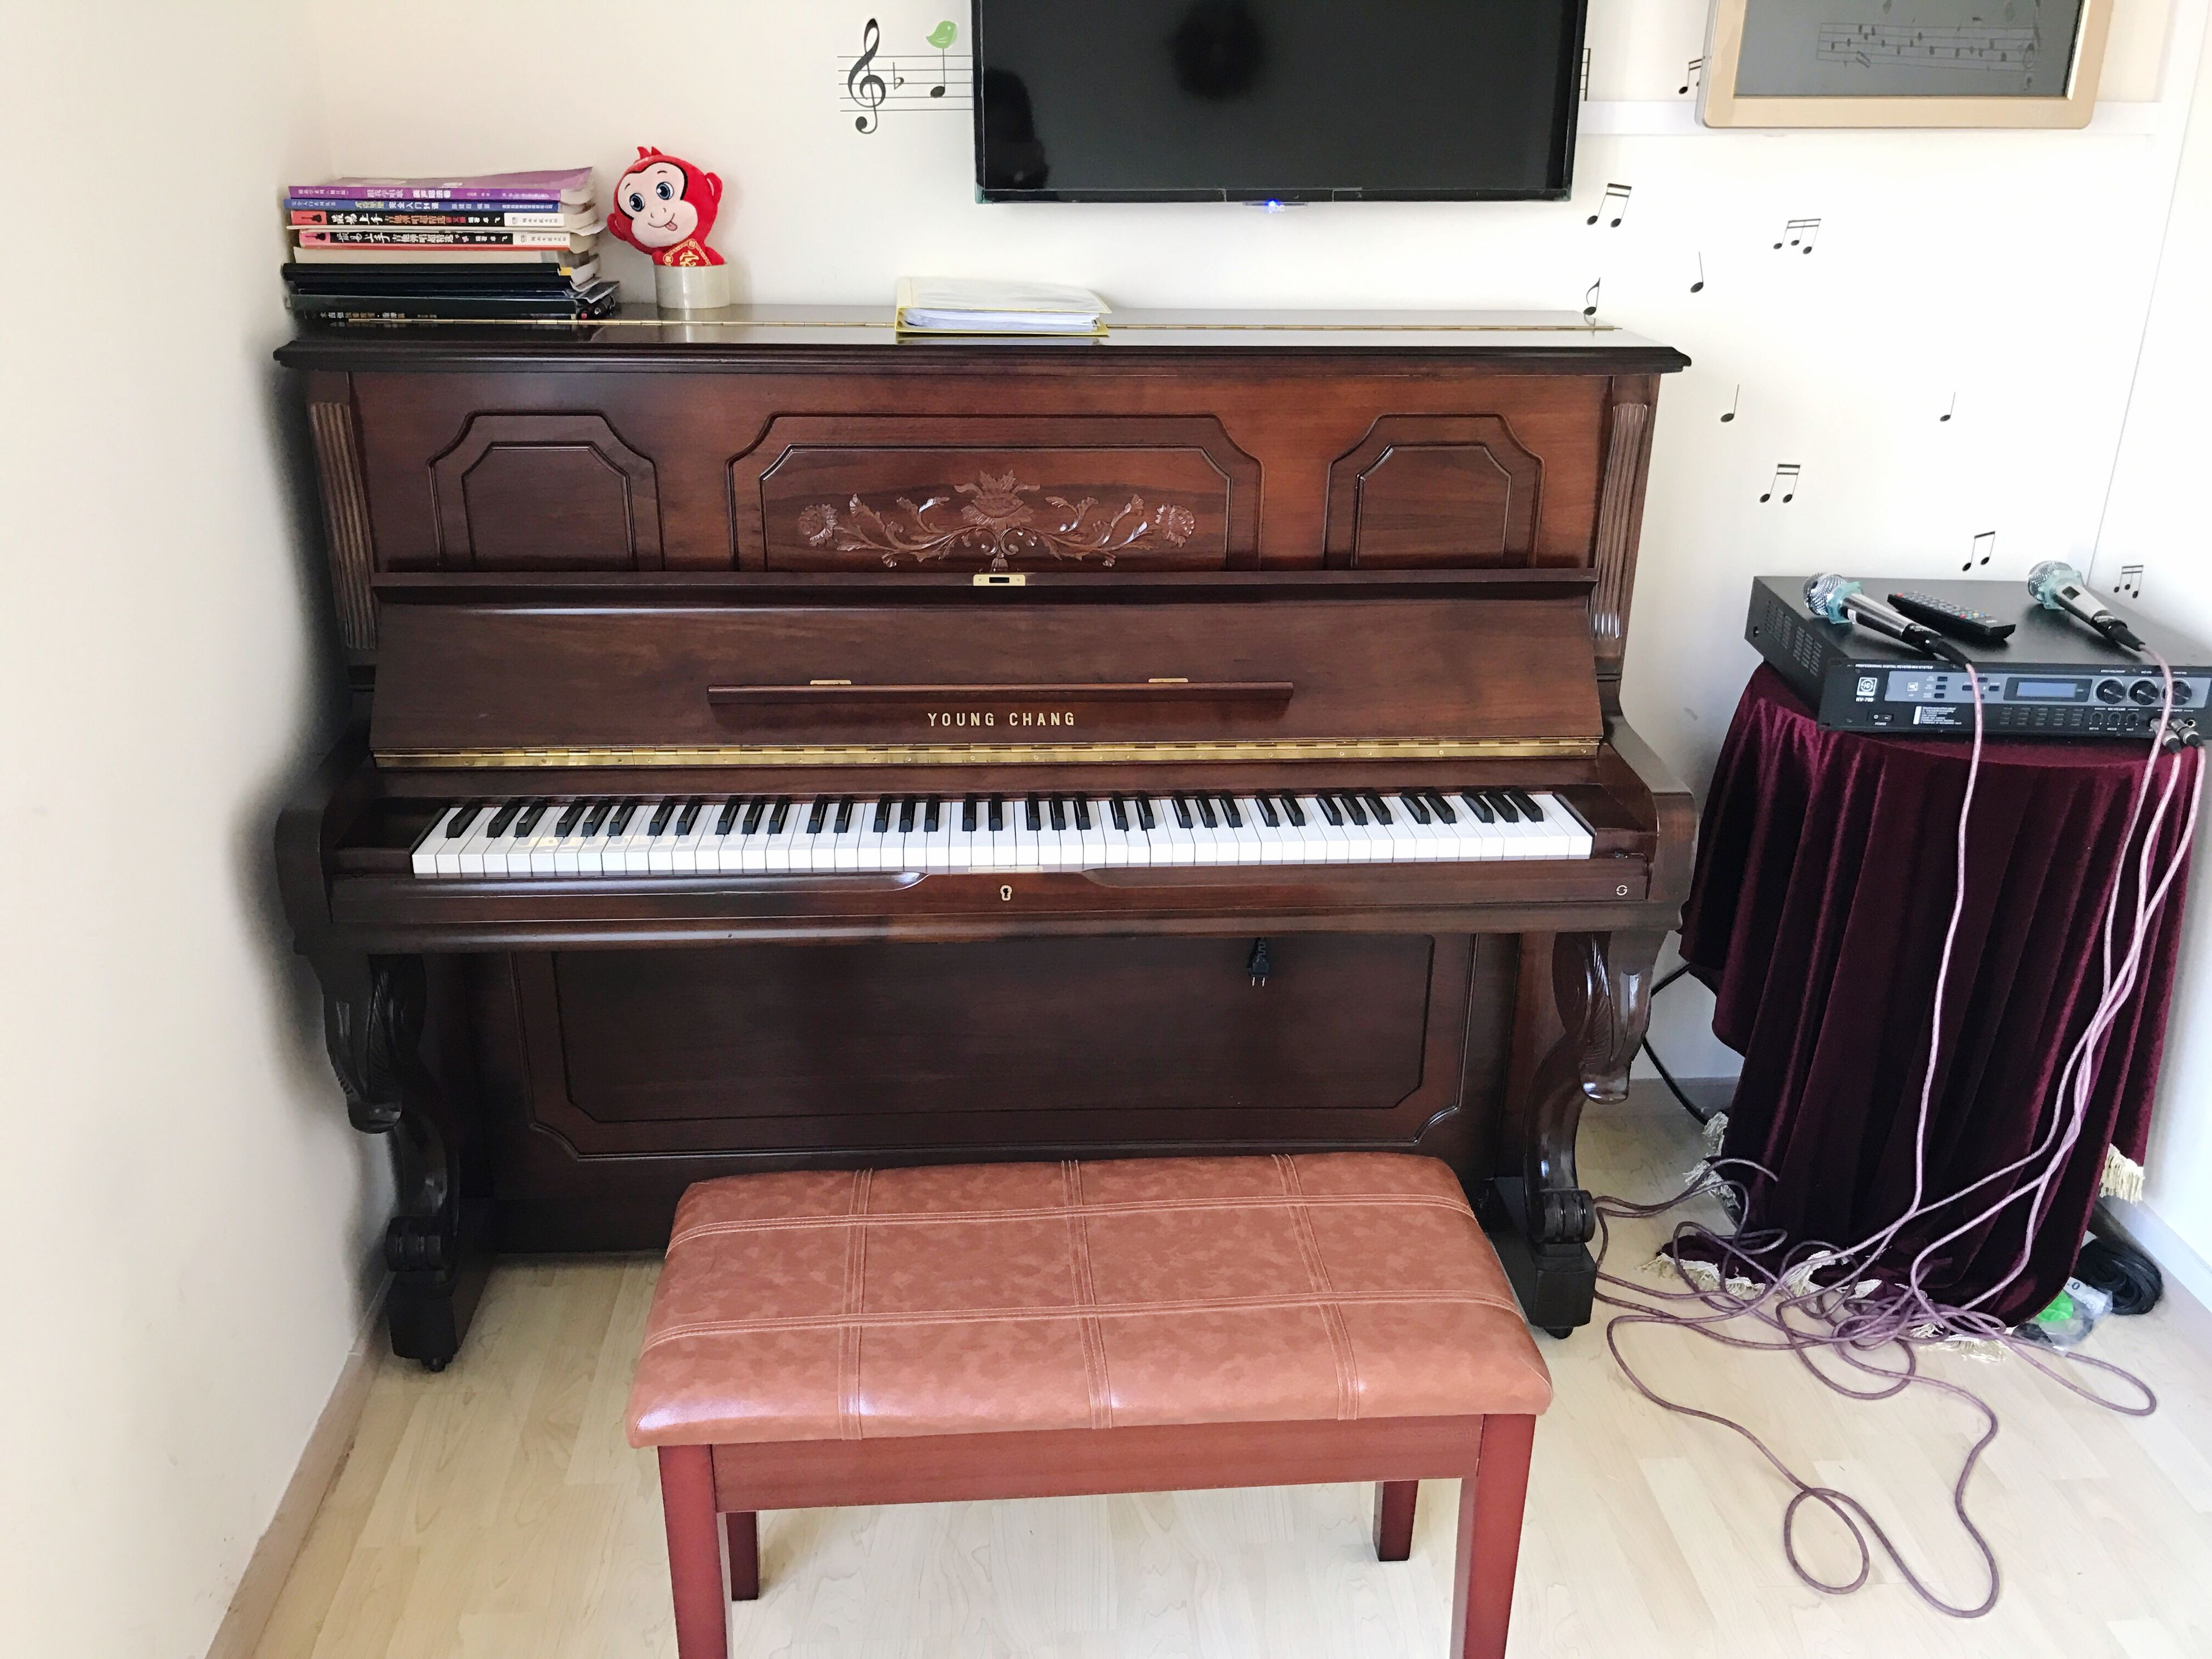 music, piano, musical instrument, piano key, arts culture and entertainment, keyboard instrument, old-fashioned, musical equipment, no people, indoors, classical music, jazz music